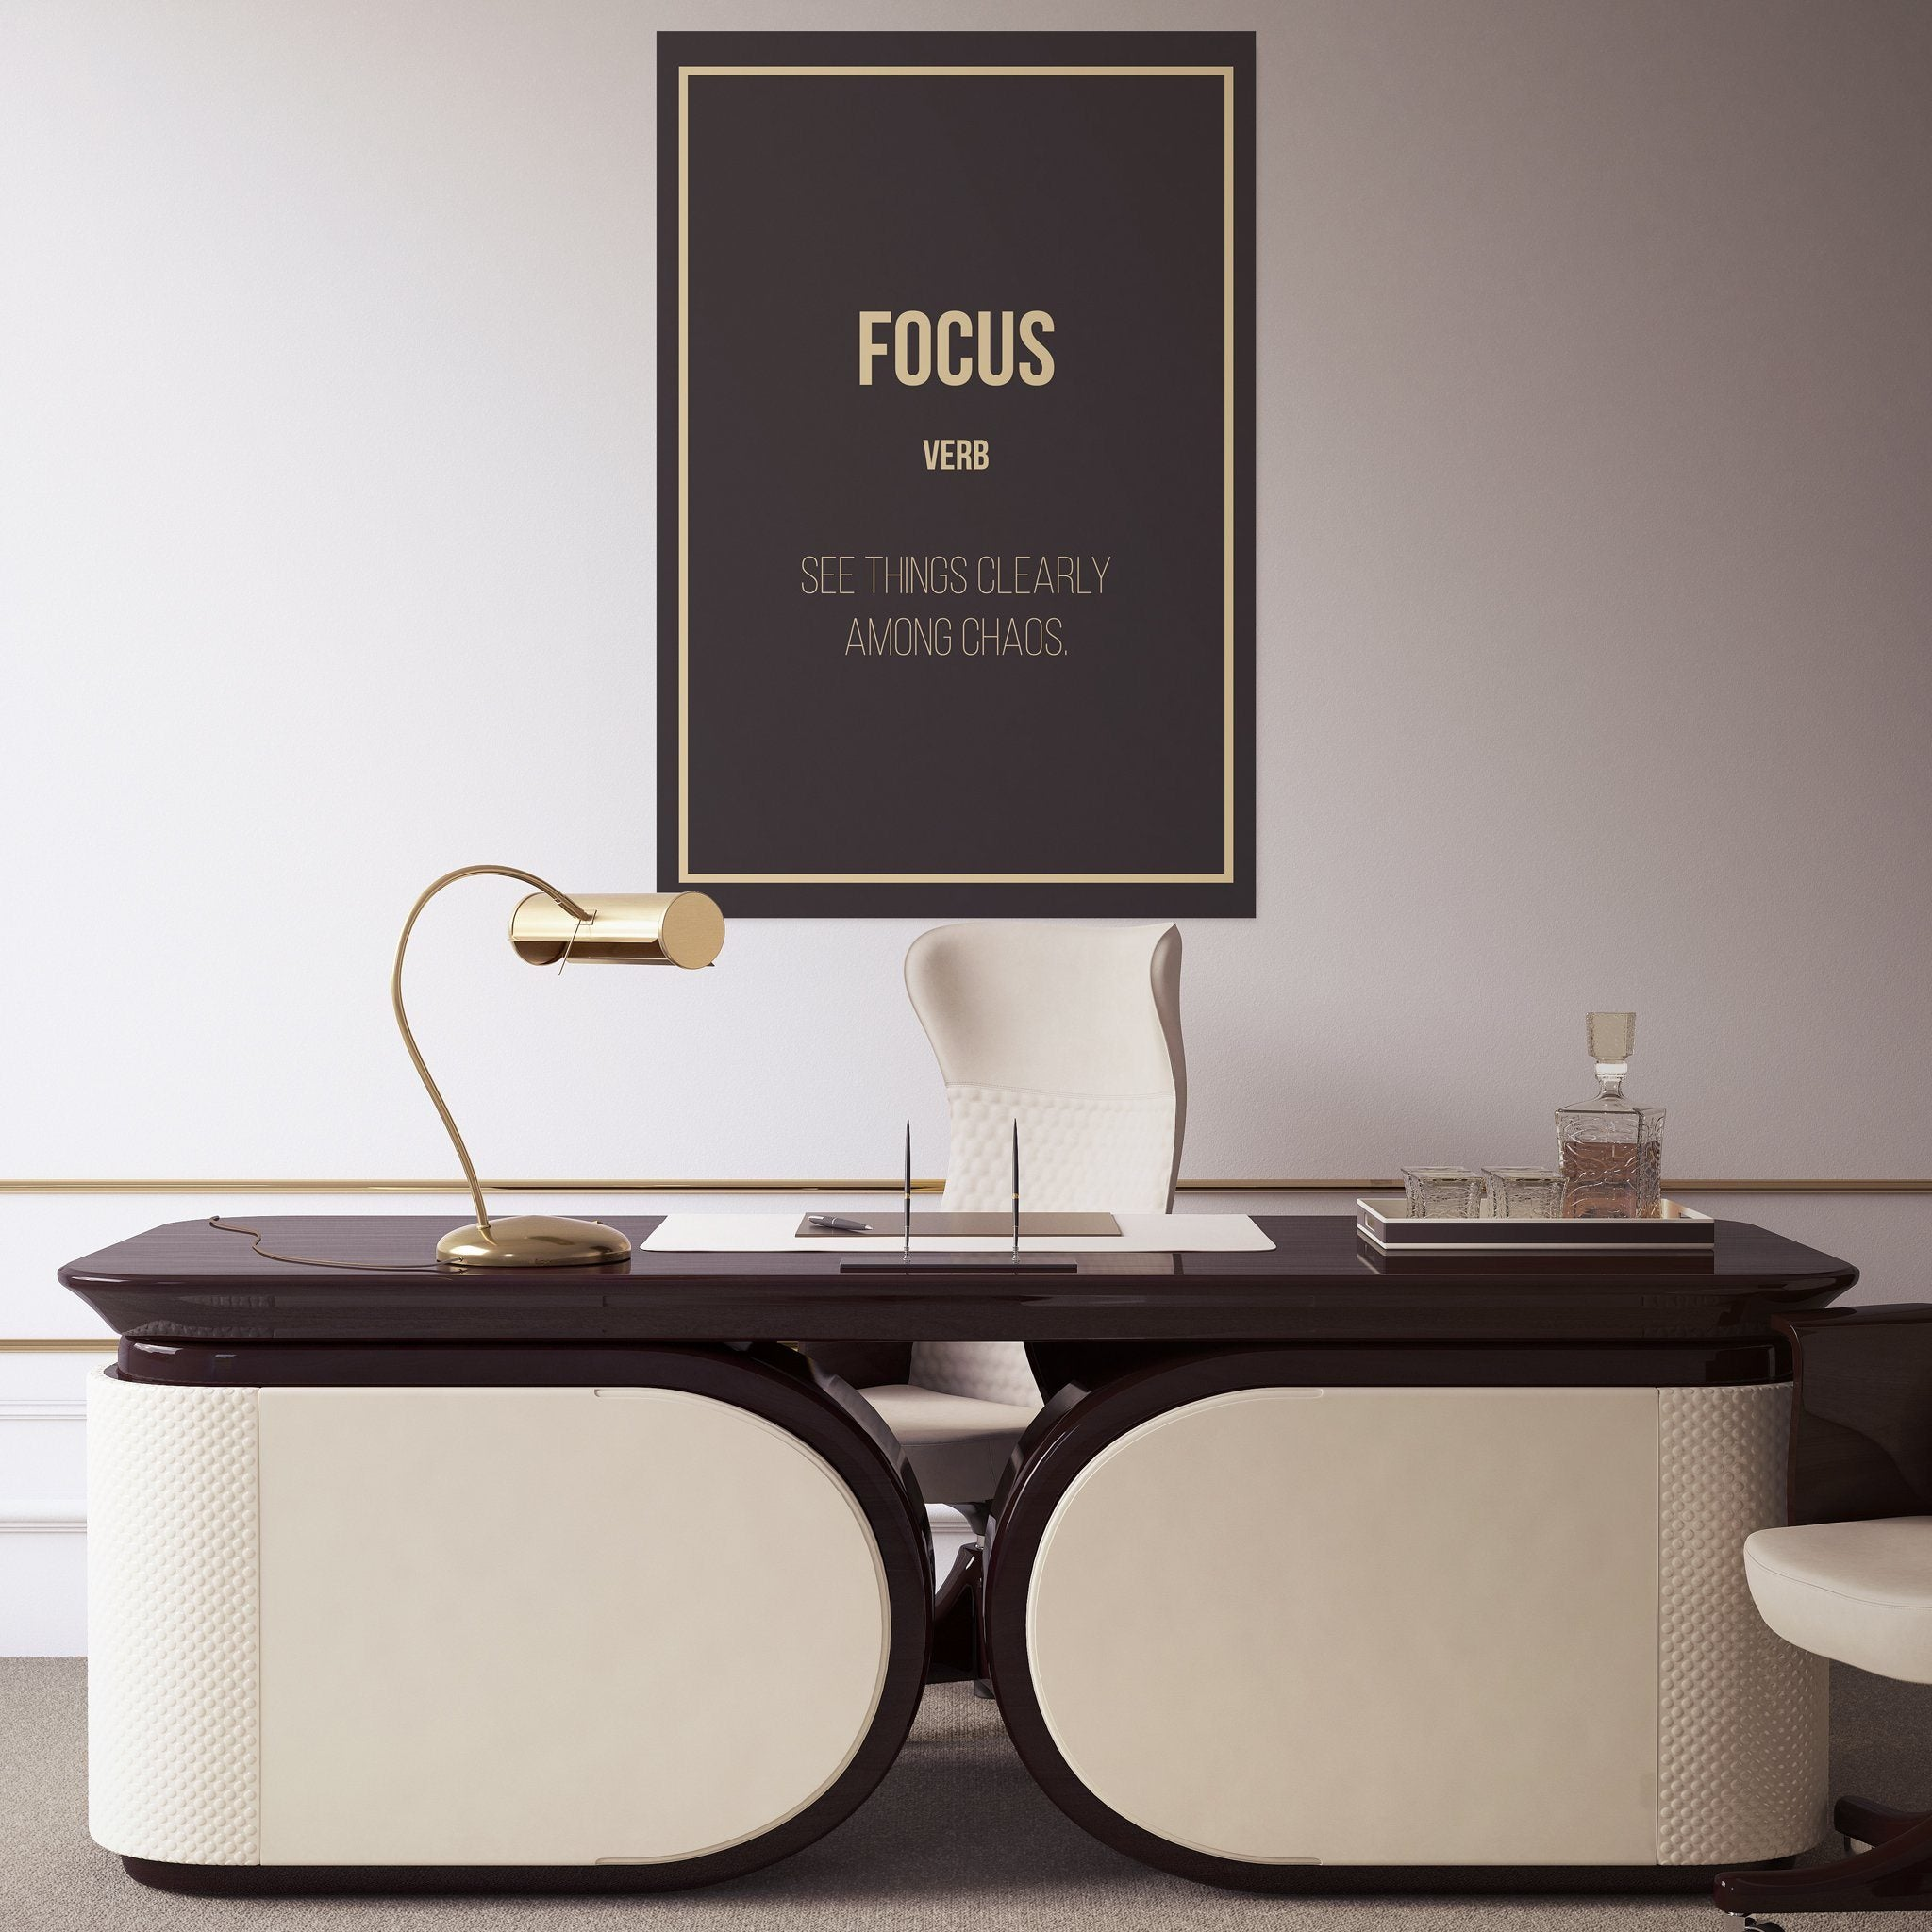 Focus - definition hanging in a office entrepreneur